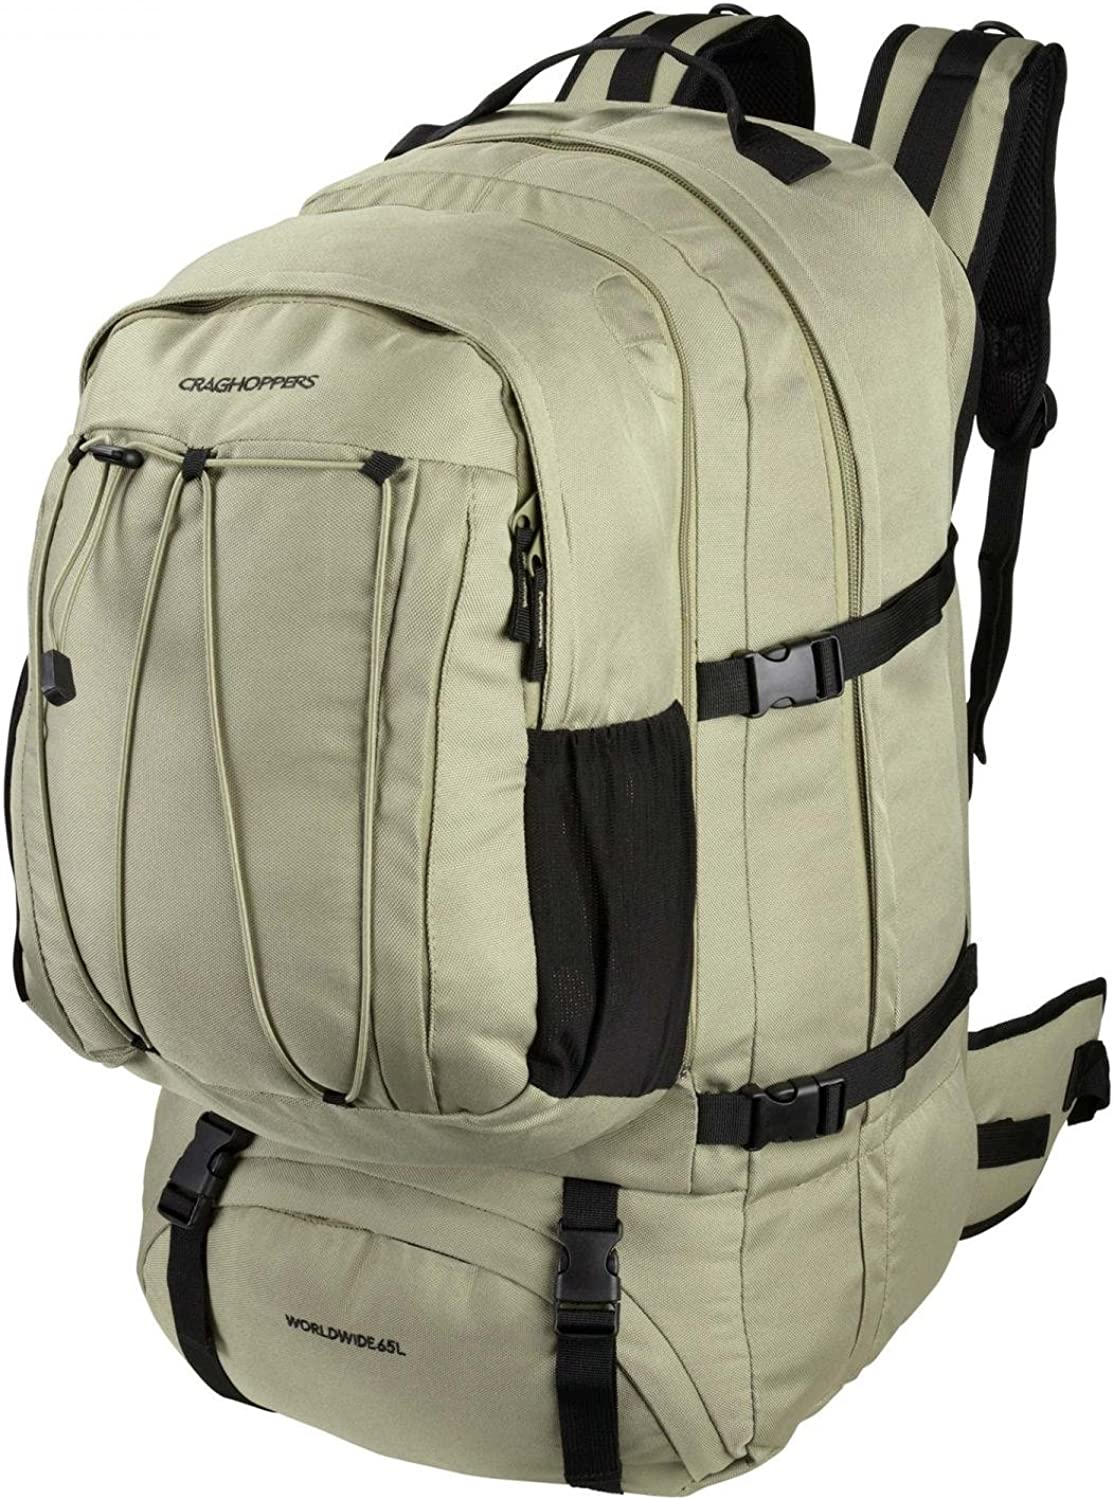 Craghoppers Outdoor Worldwide 65L Rucksack (UK Size  One Size) (Pebble)